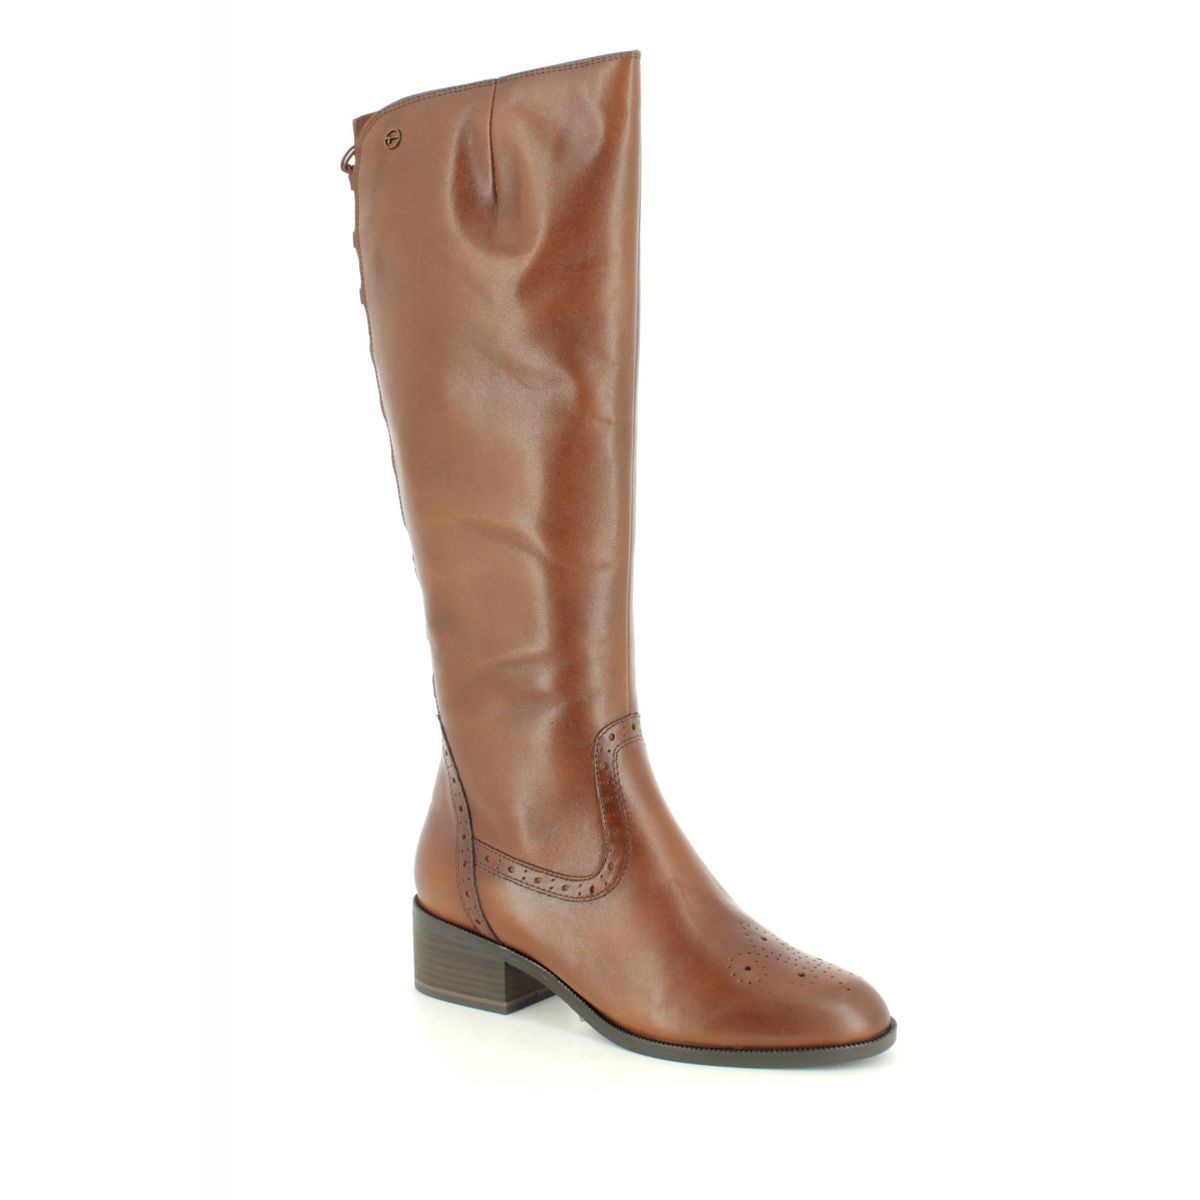 25541-21-305 Tan Leather knee-high boots